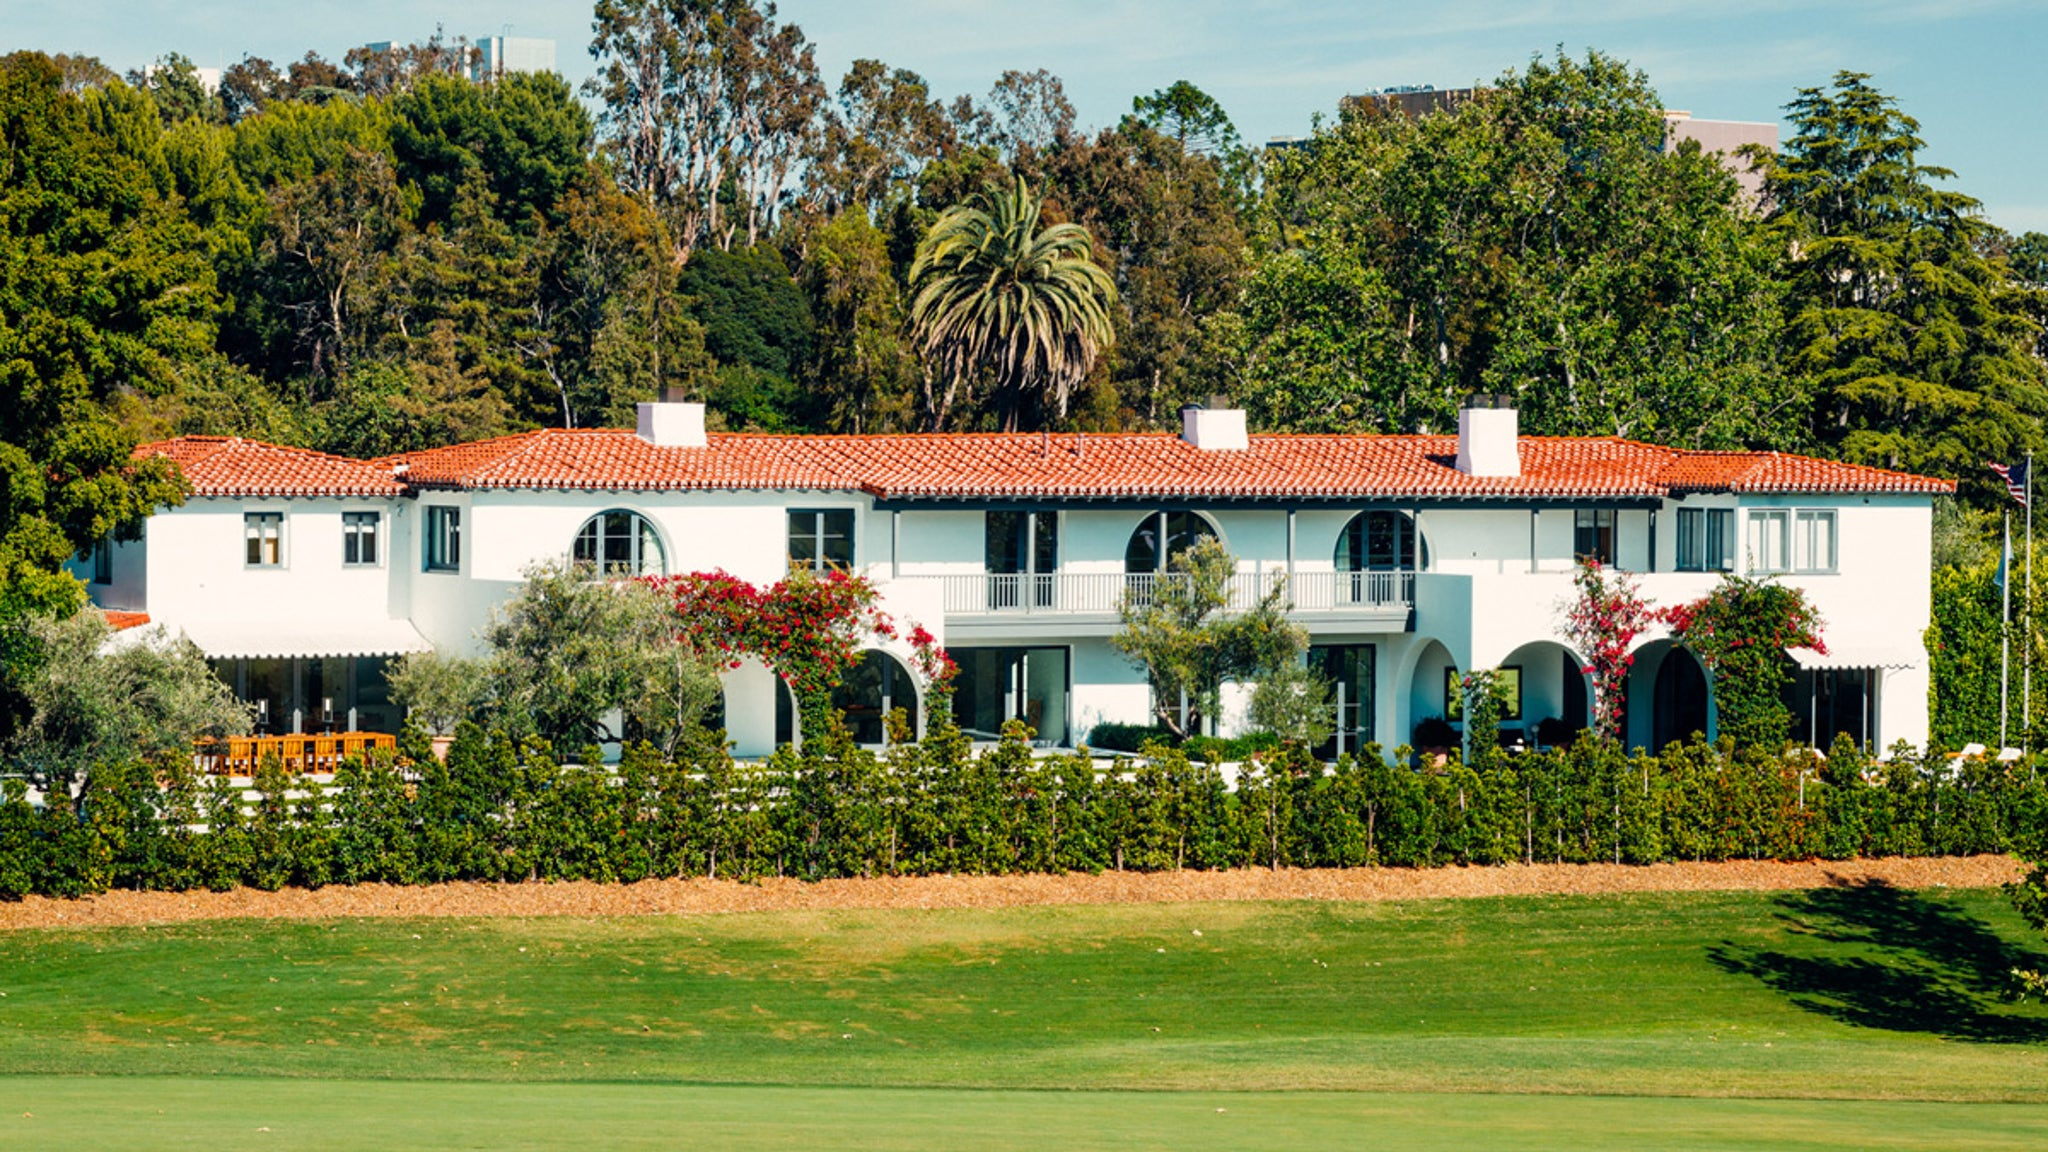 Lori Loughlin, Mossimo Giannulli Sell Bel-Air Estate for $18.75 Million ... WAY Below Listing